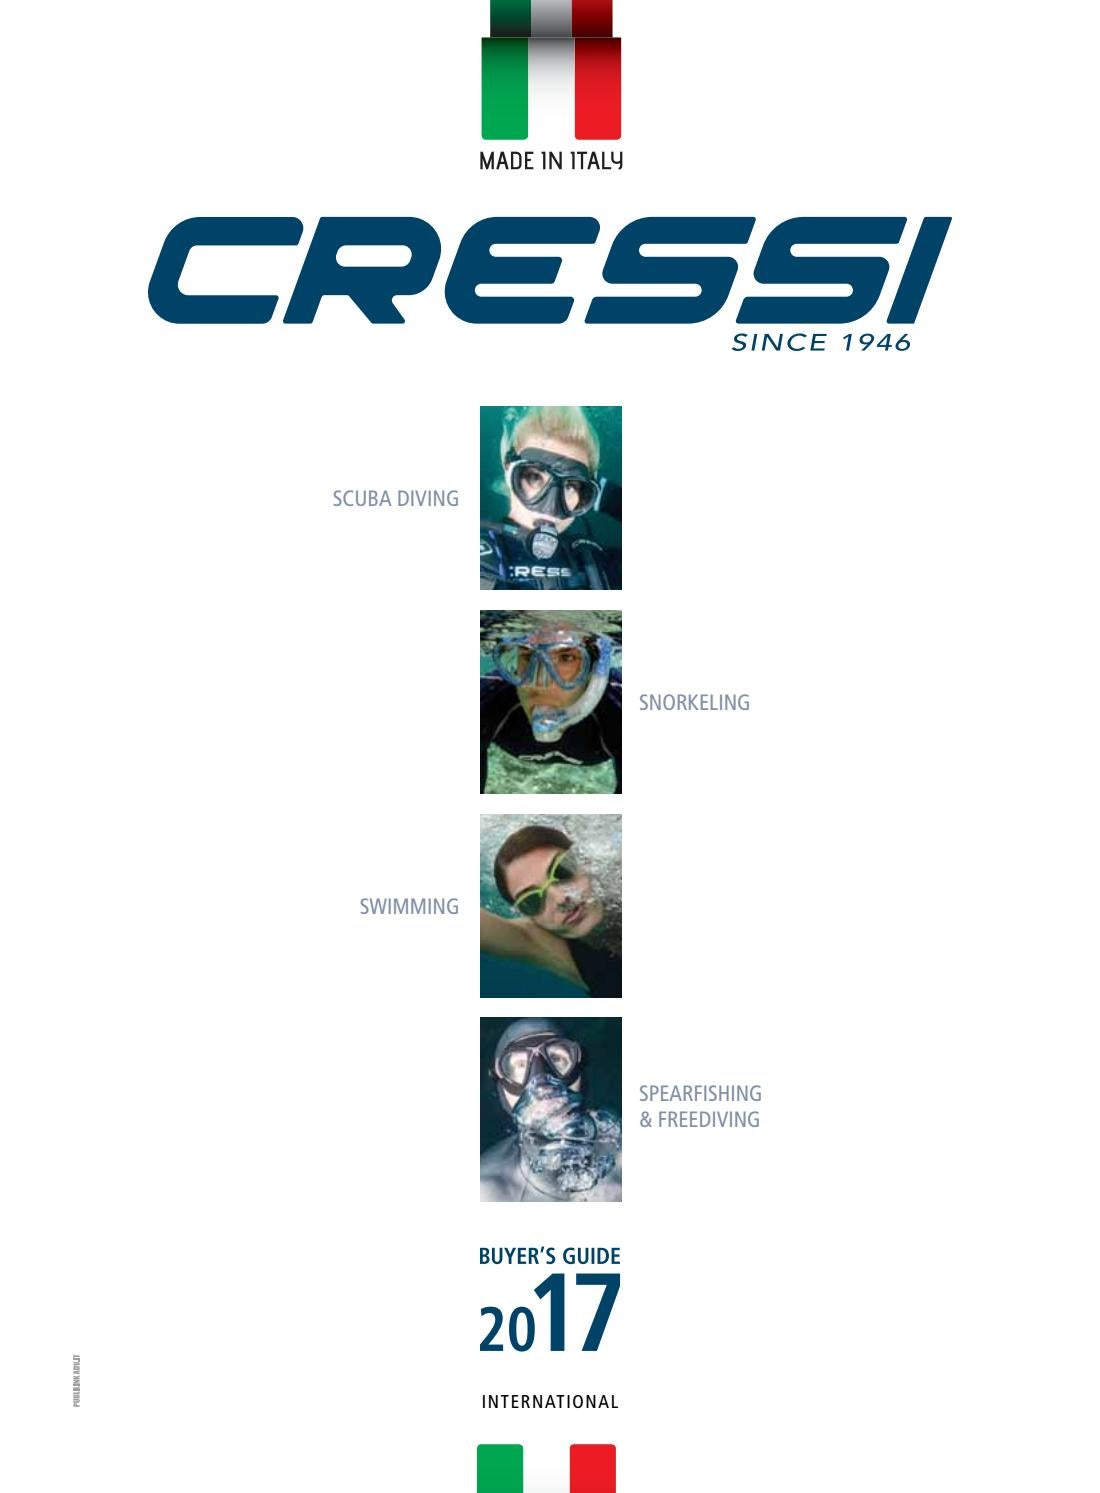 Cressi SL Star Pneumatic Speargun Replacement O-Ring Kit for Spearfishing Freediving and Scuba Diving